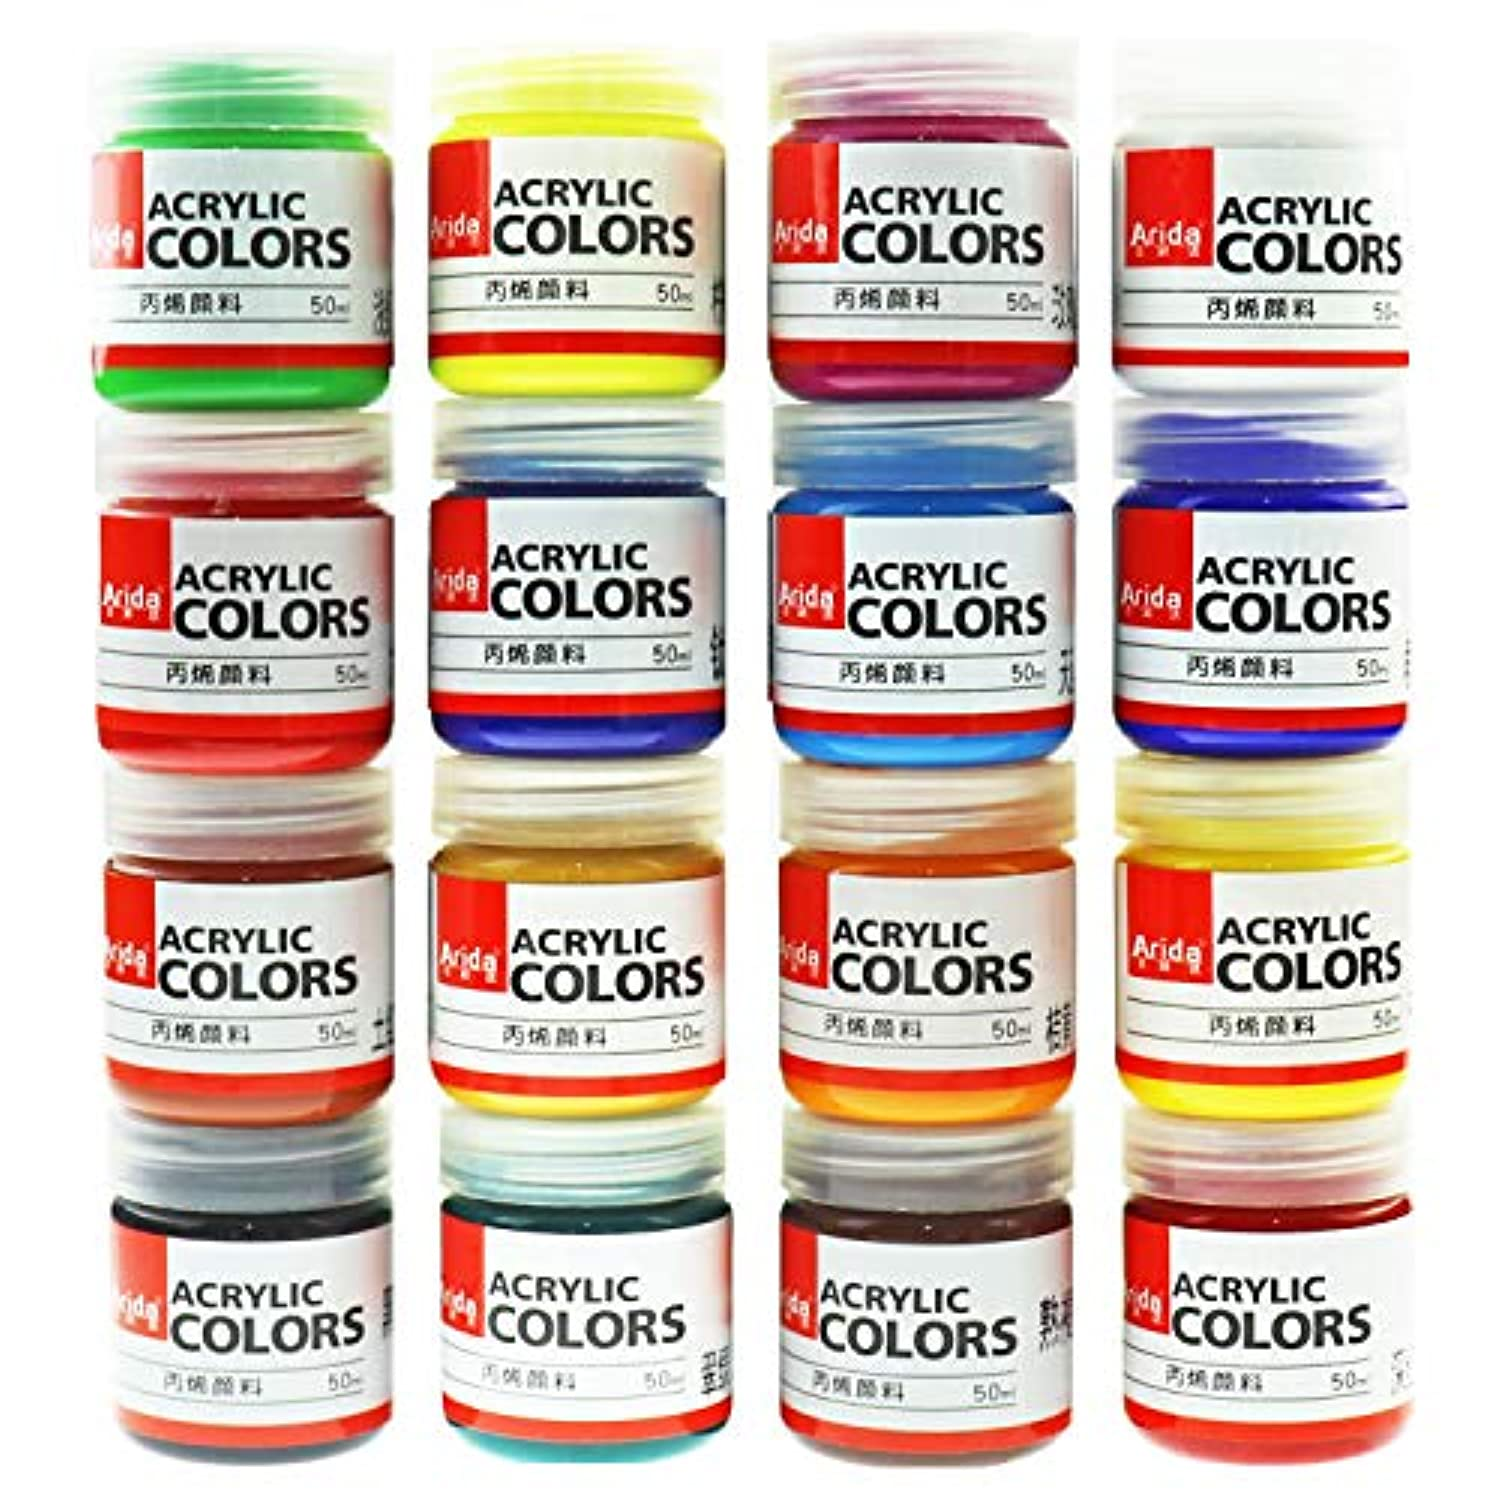 Artist Quality Acrylic Paint Set For Kids Adults Beginners Set Of 16 Colors Non-Toxic Acrylic Paint For Painting Canvas Wood Fabric Ceramic Crafts (50 Milliliter, 1.69 Ounce.)